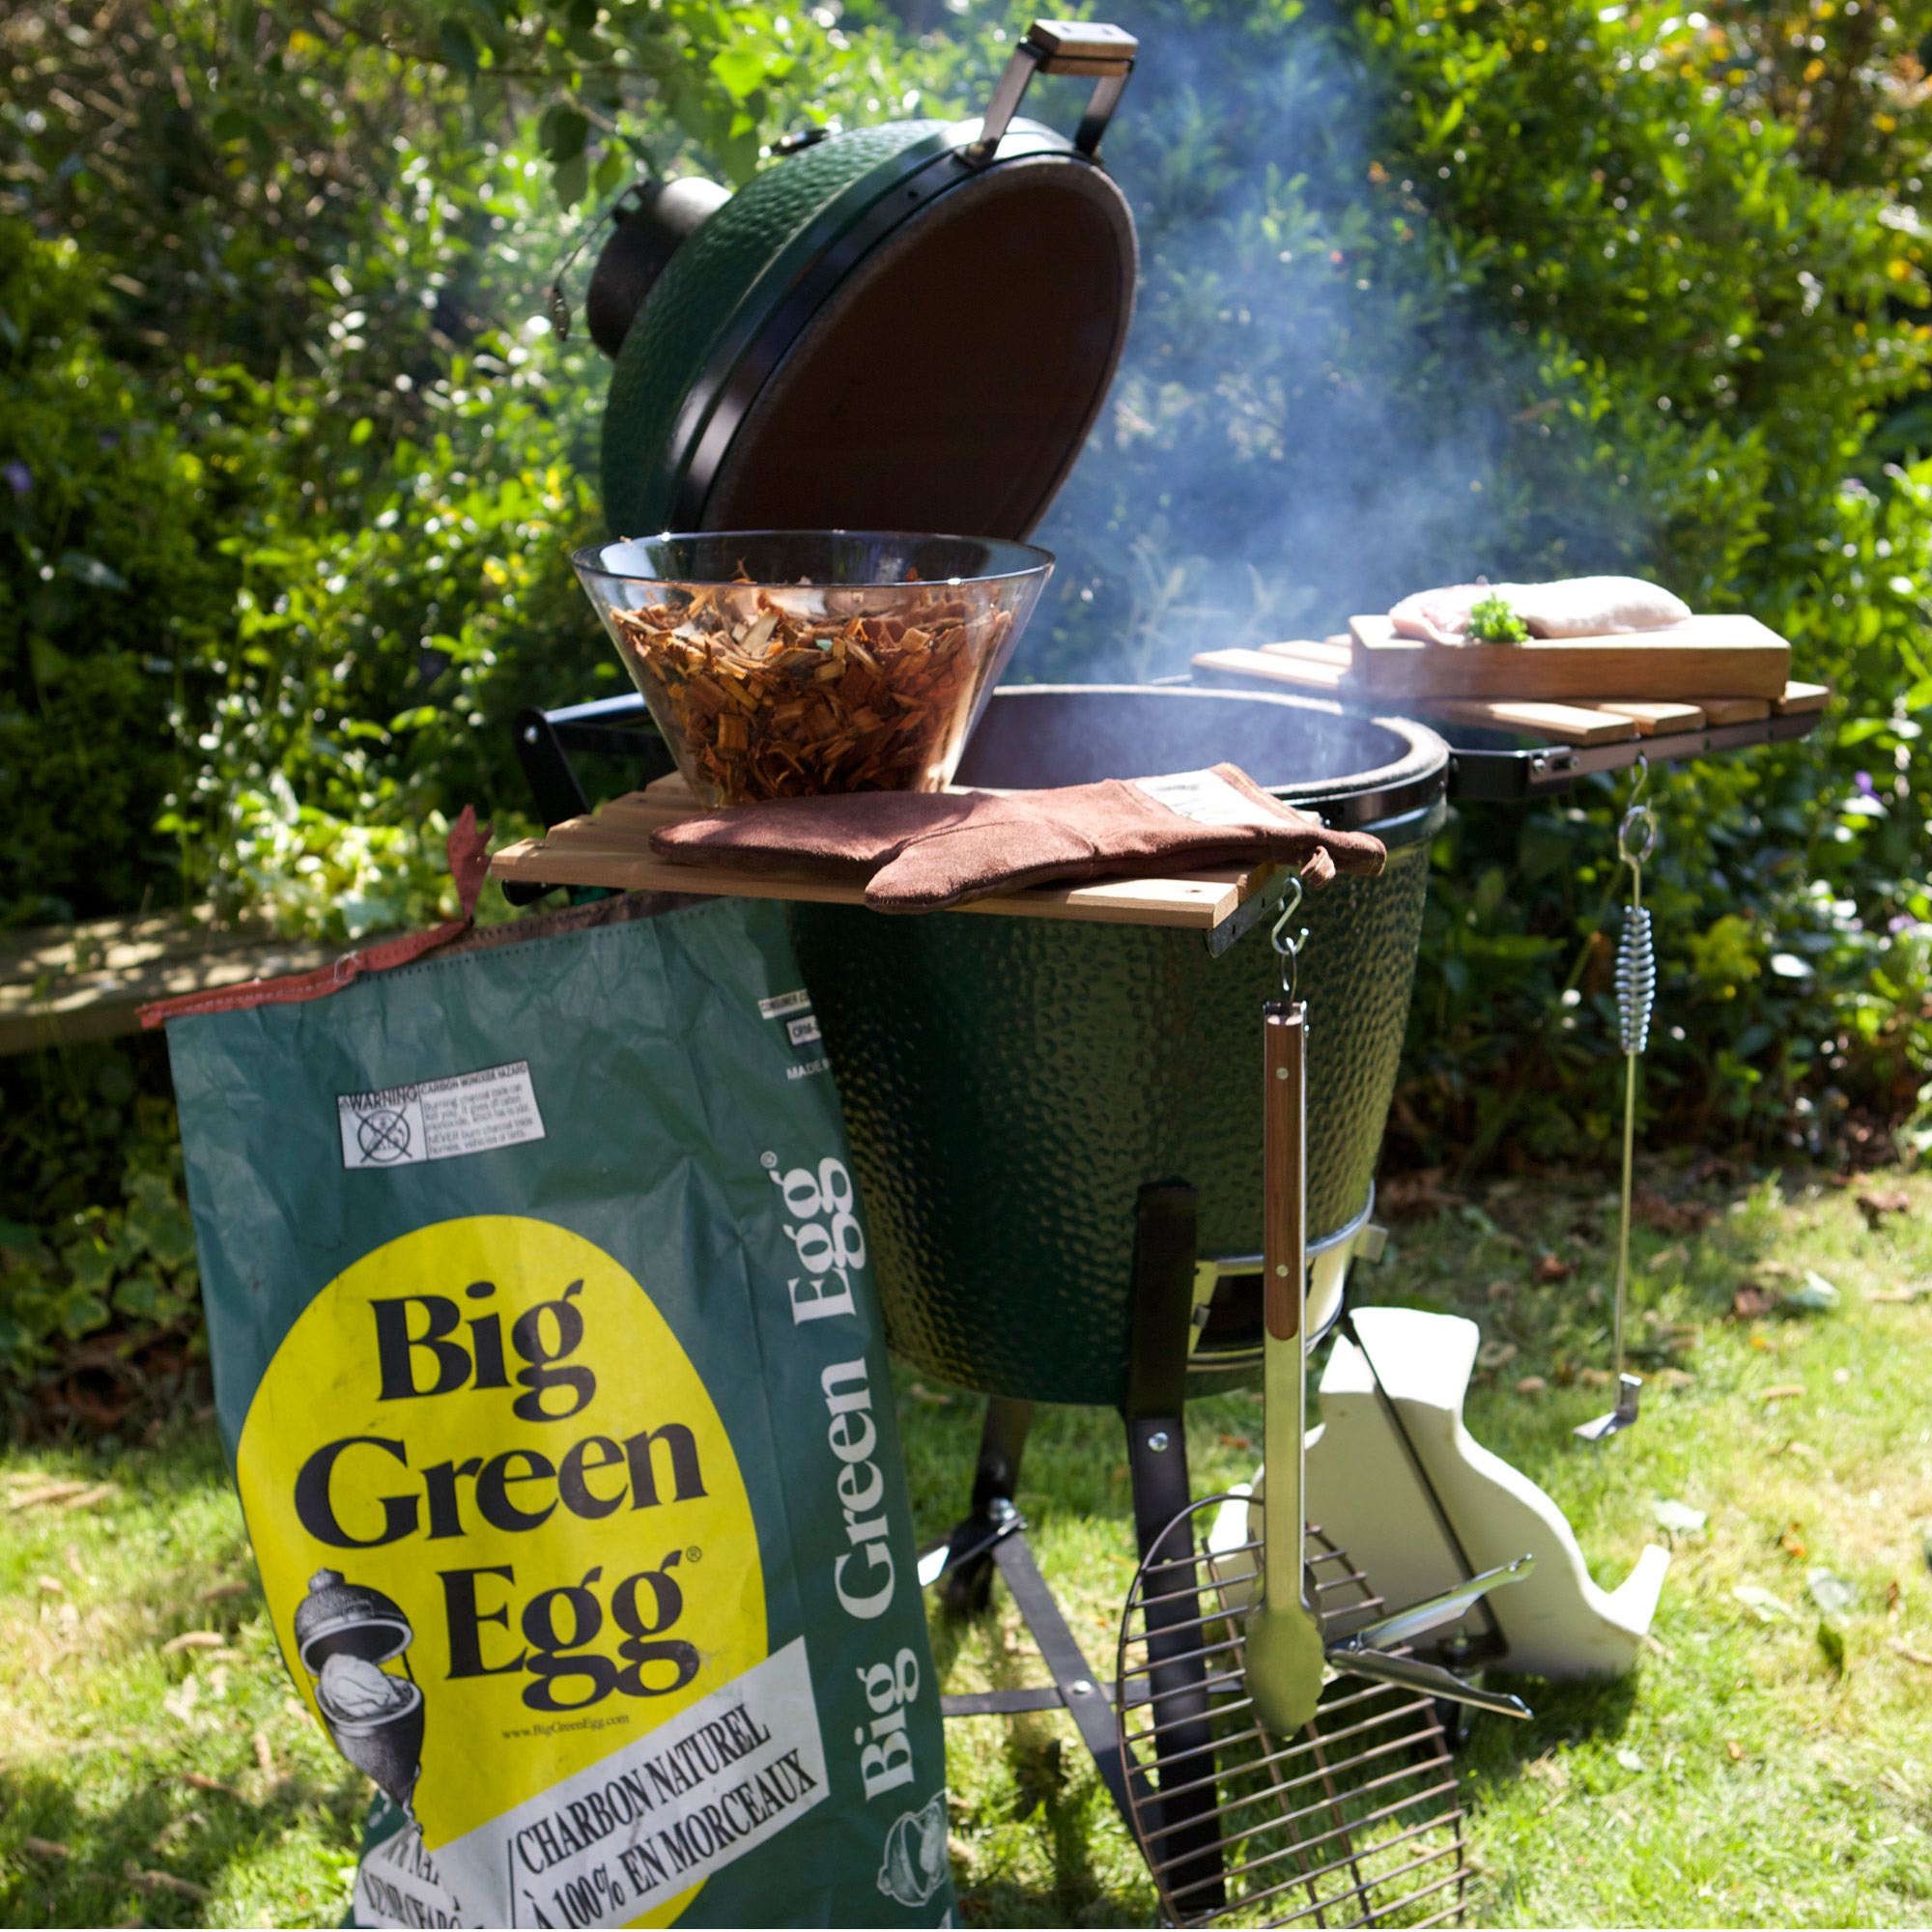 Big Green Egg Bundles